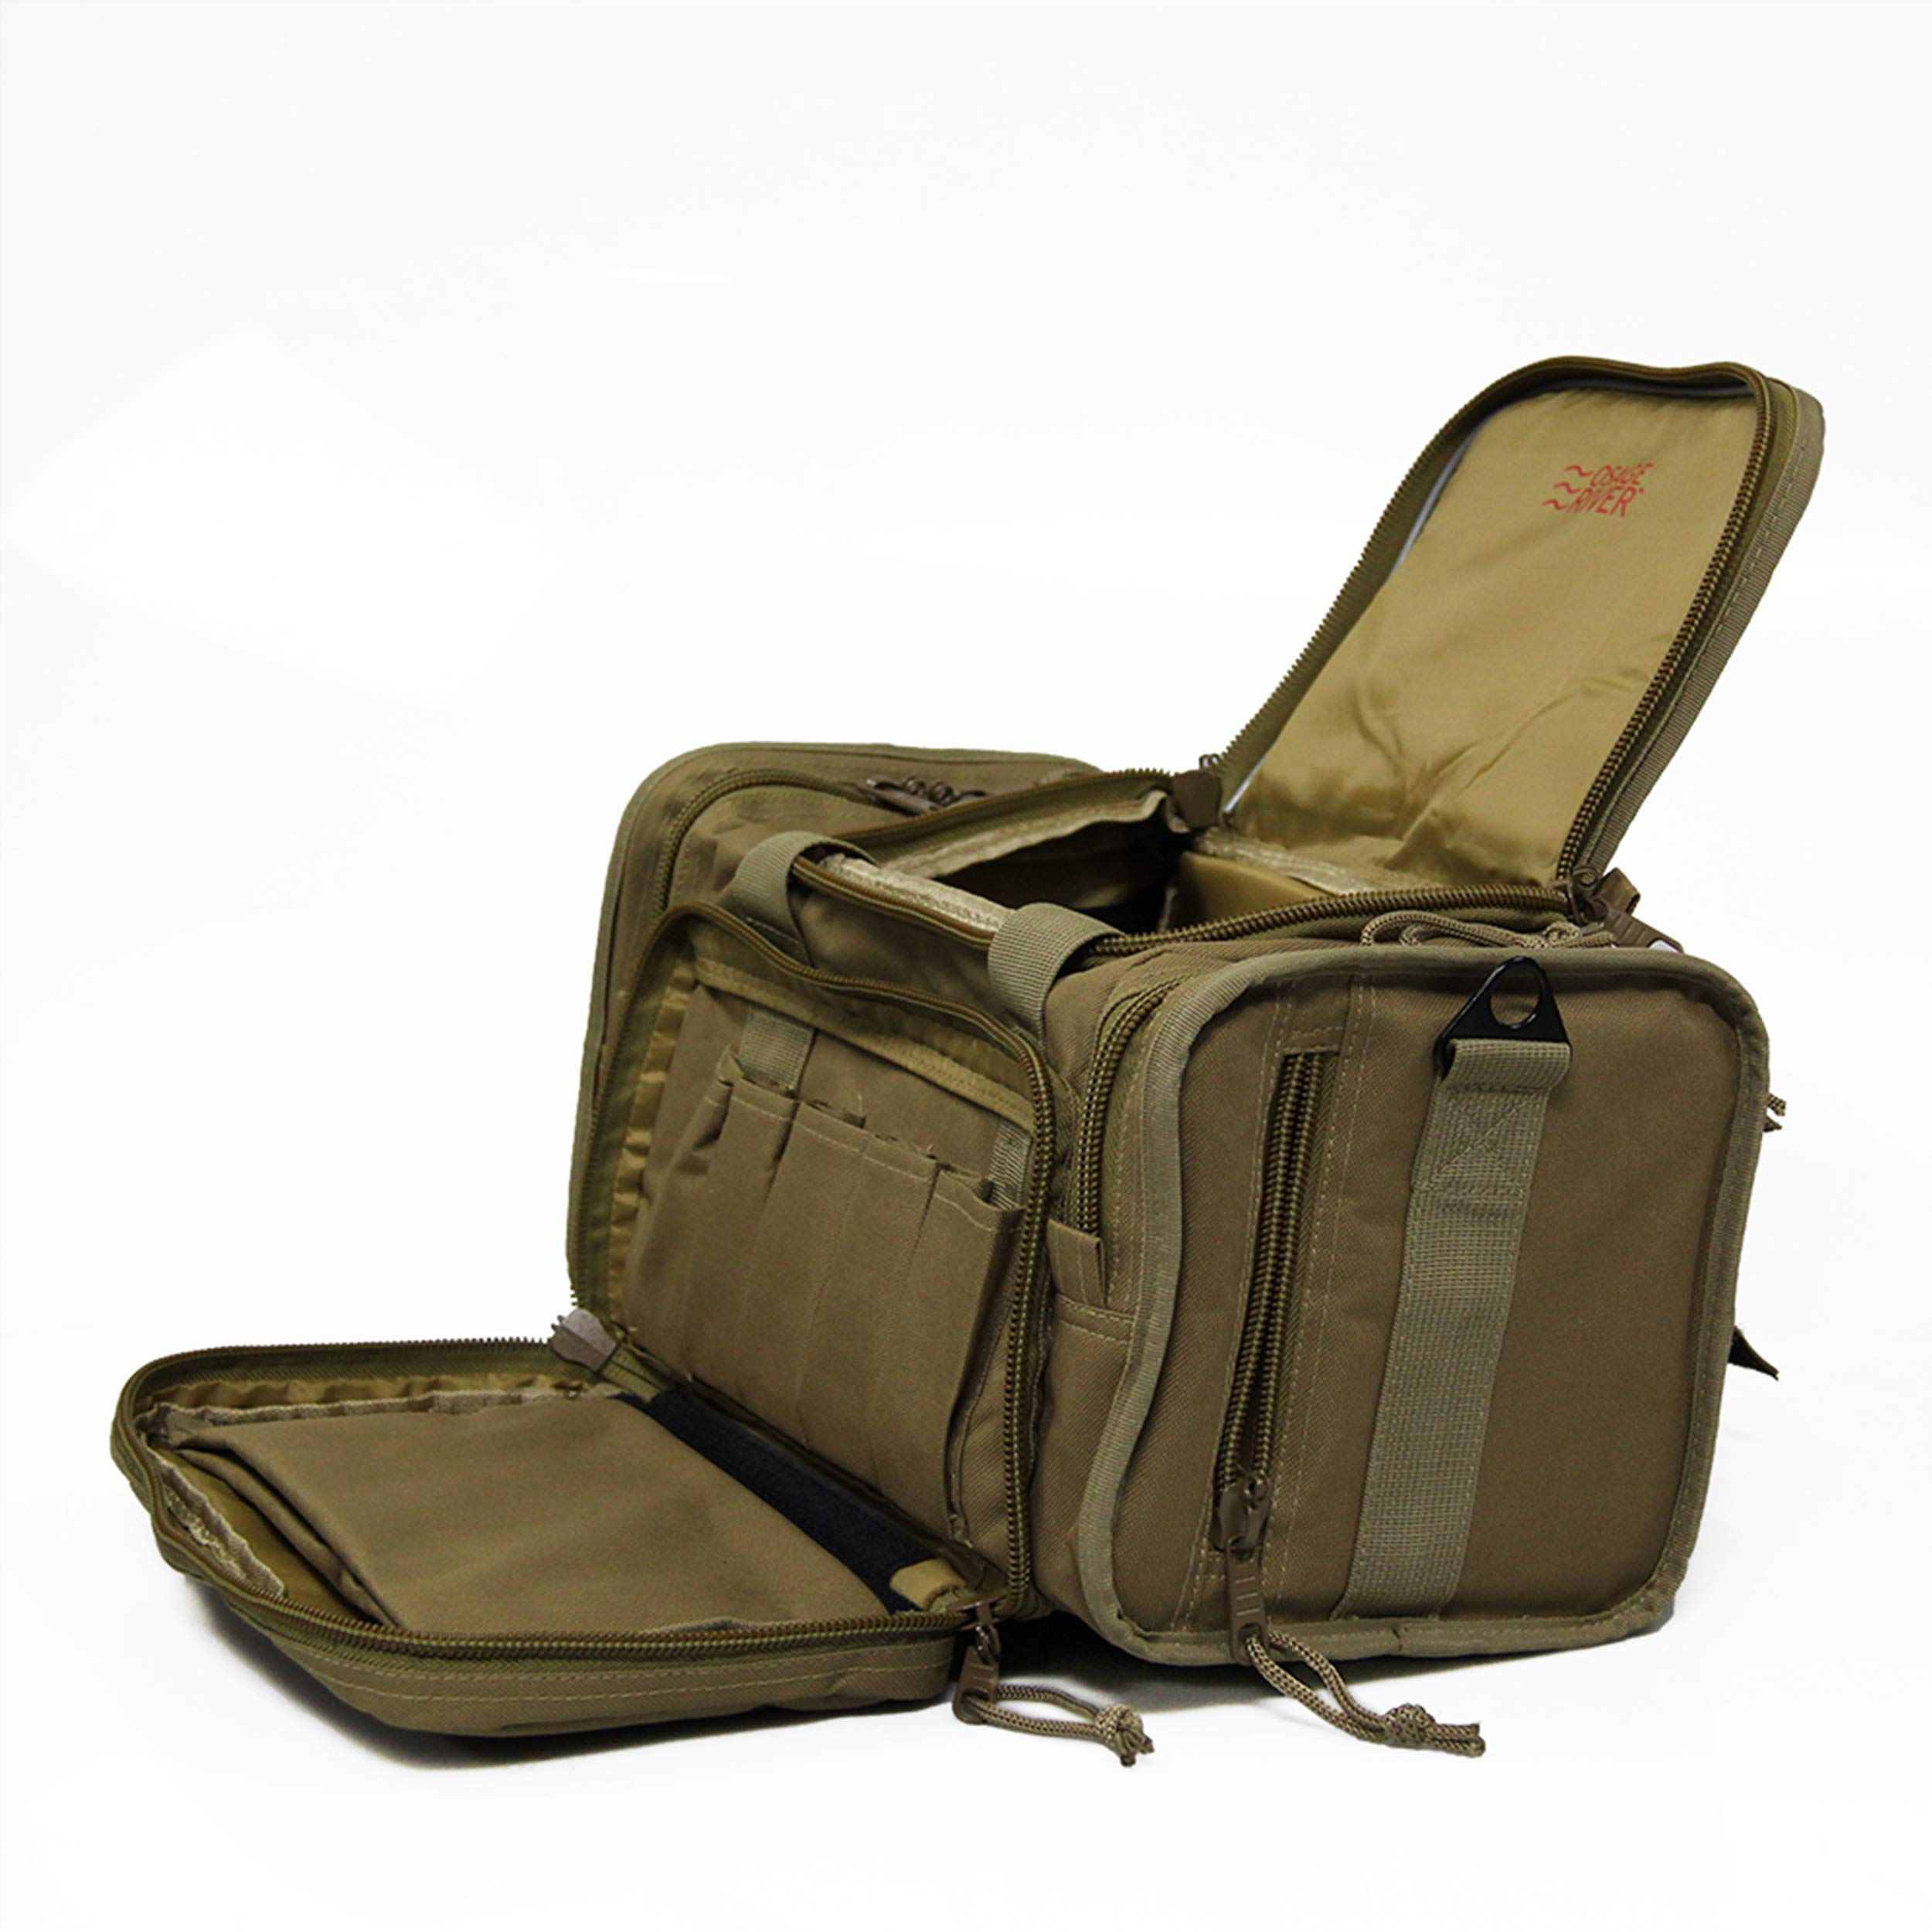 Osage River Tactical Shooting Gun Range Bag, Coyote Tan , Light Duty (13.5 x 10.5 x 7.5) Inches